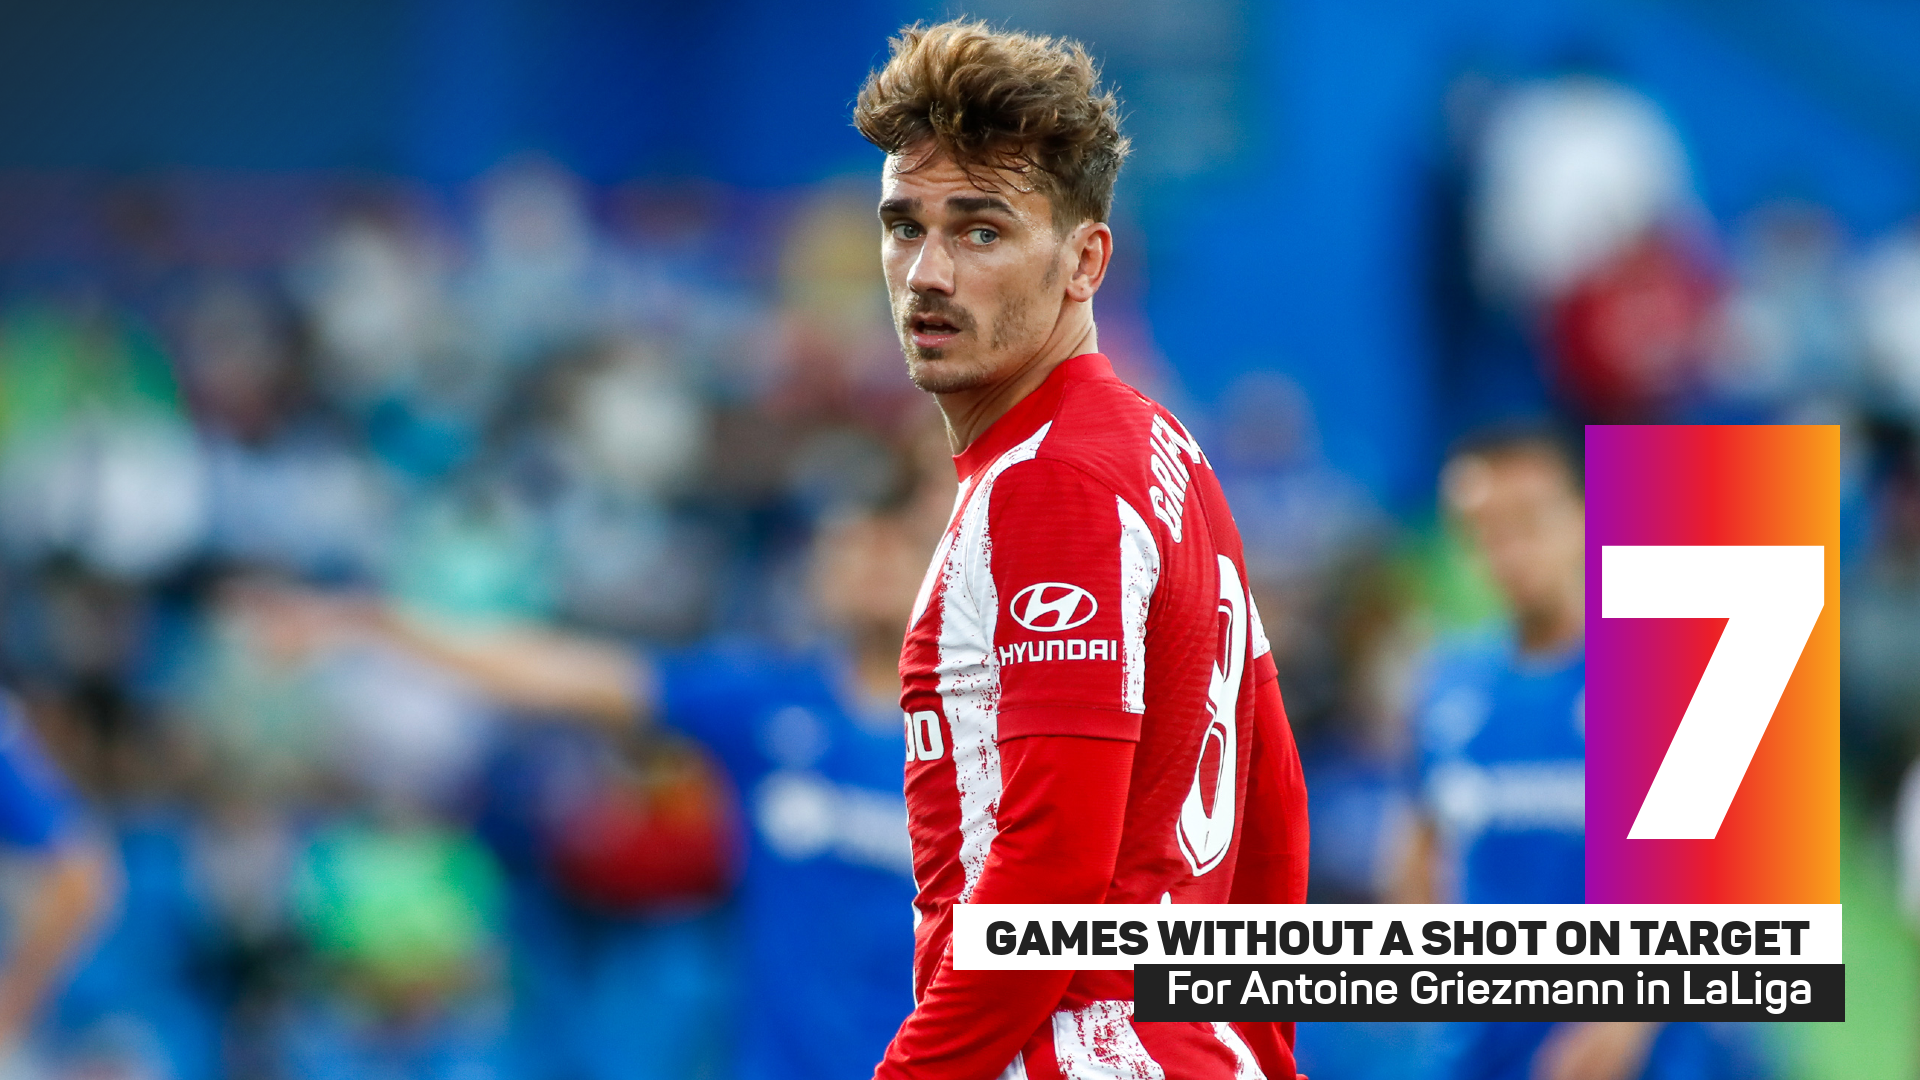 Antoine Griezmann has failed to have a shot on target in seven league games